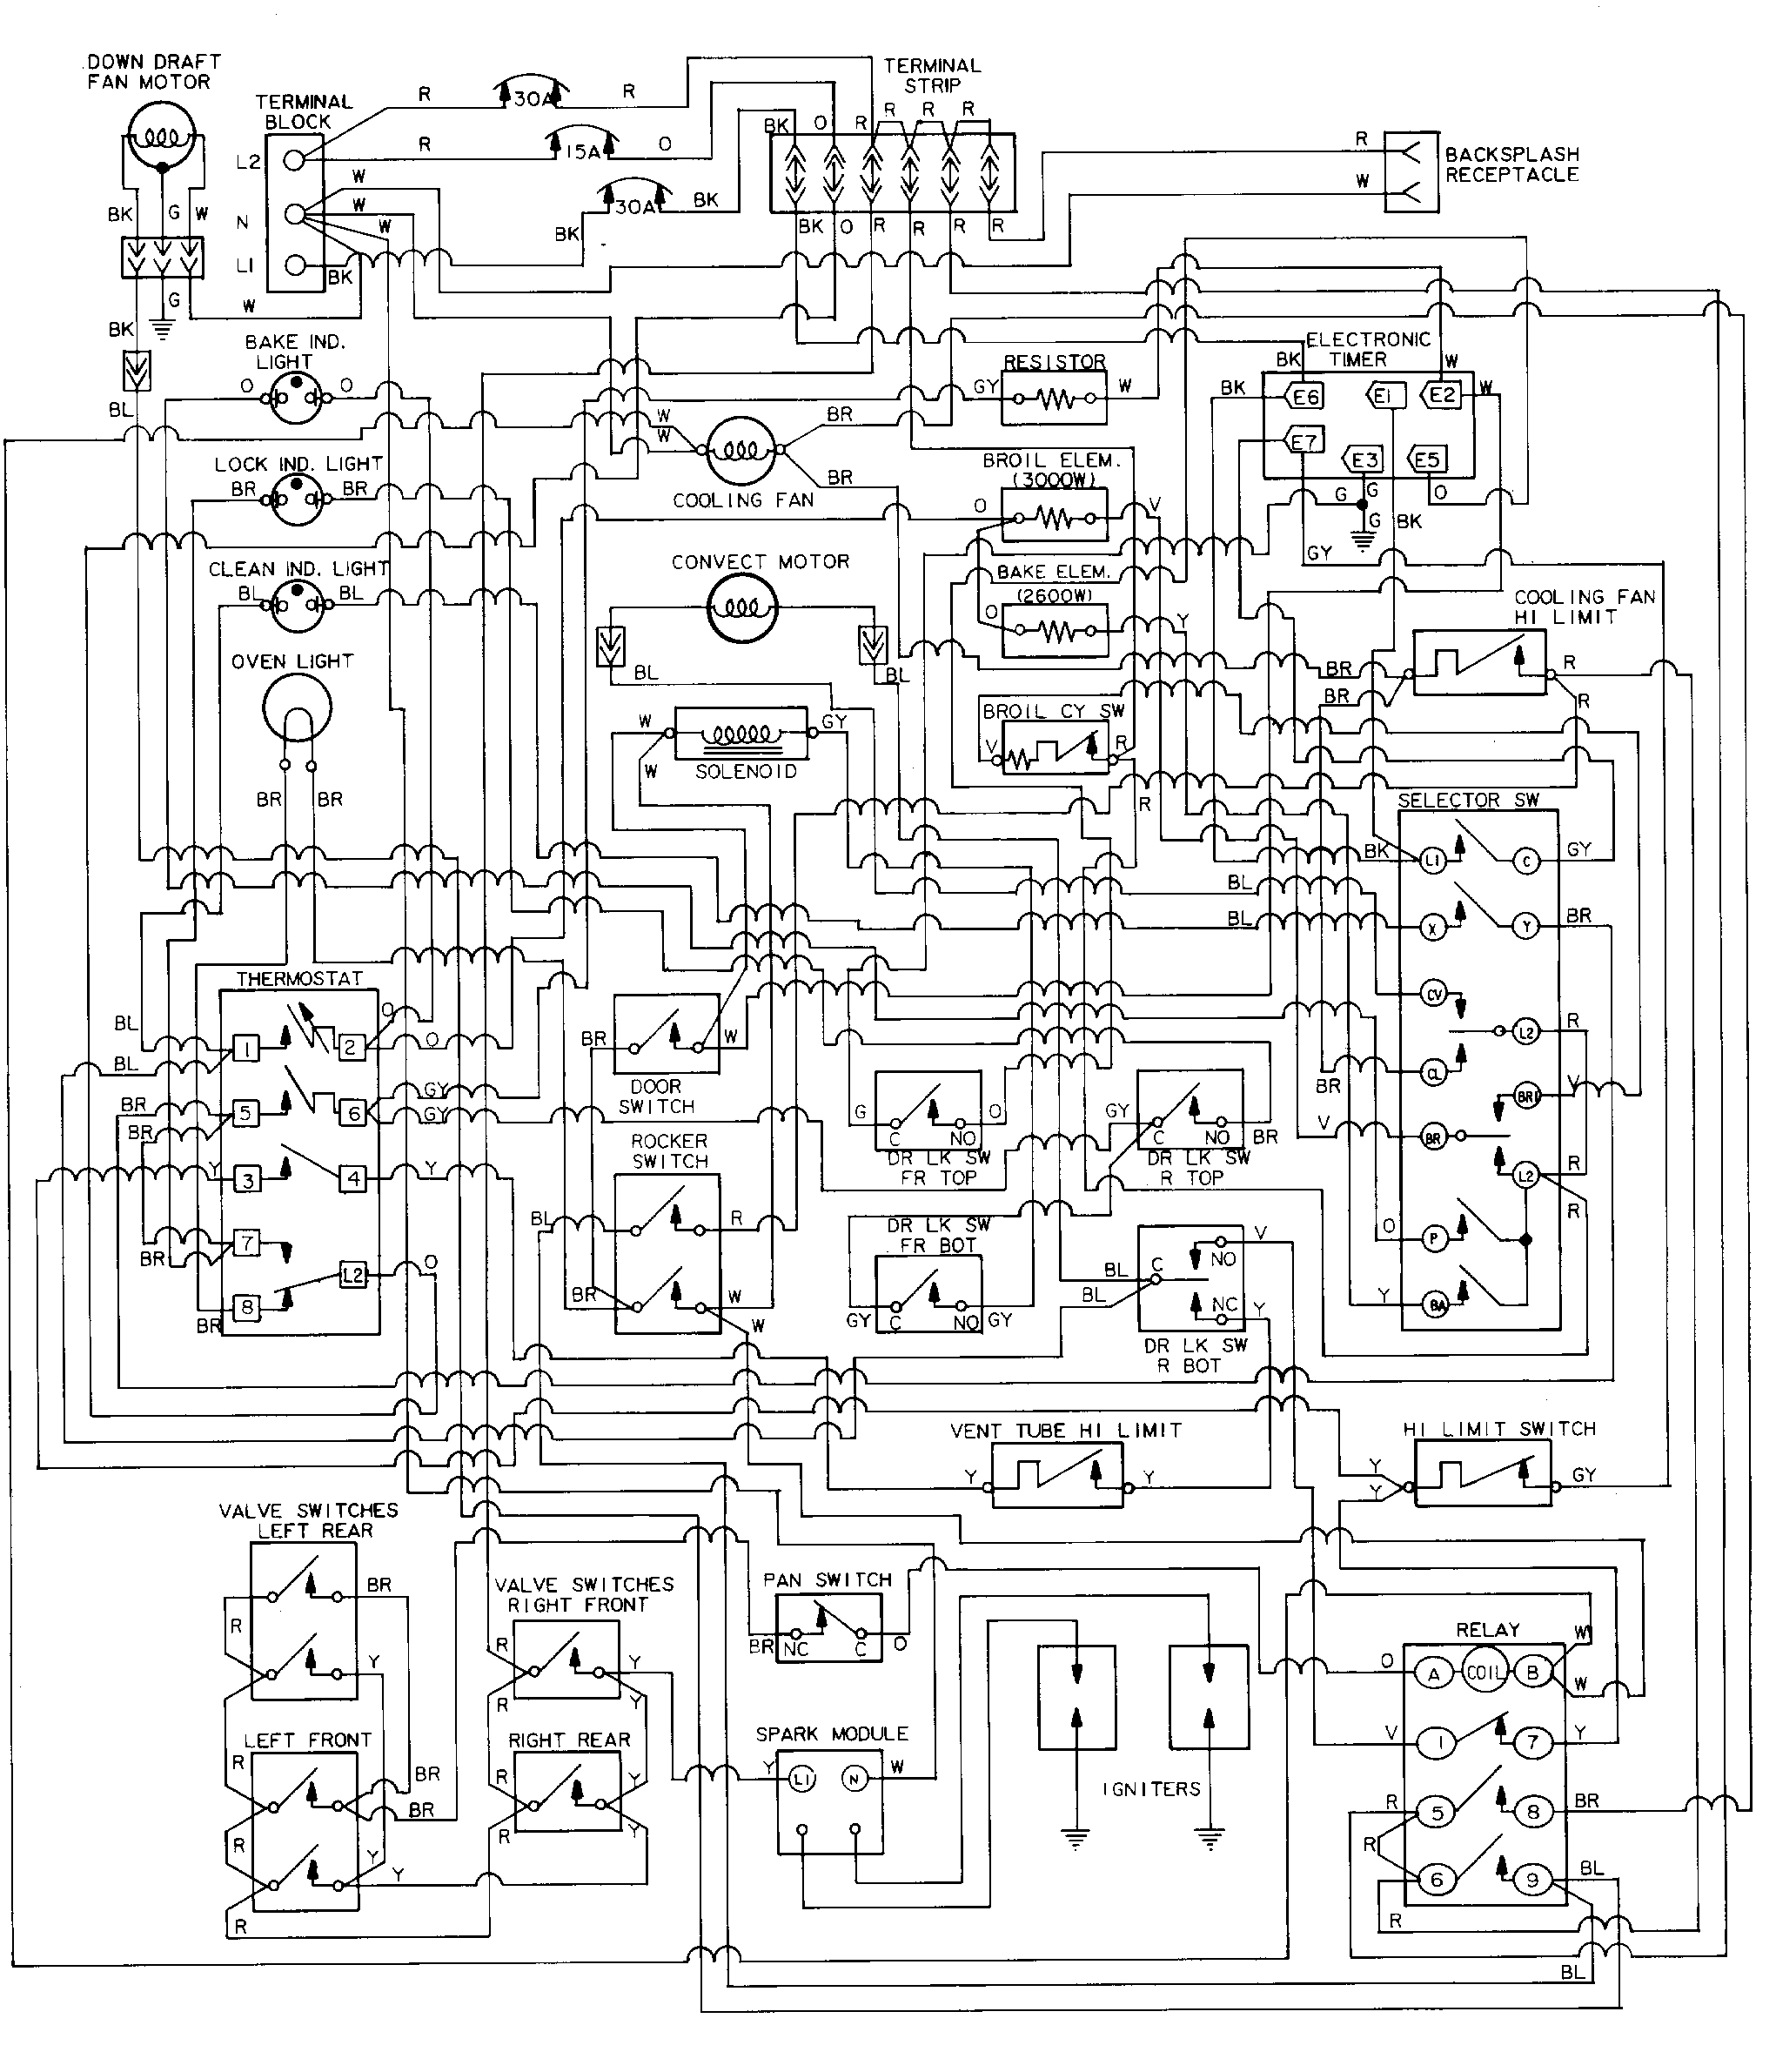 M0410001 00013?resize\\\\\=665%2C775 diagrams 1280800 j1587 wiring diagram j1587 wiring diagram 05 rosemount 8732 wiring diagram at n-0.co